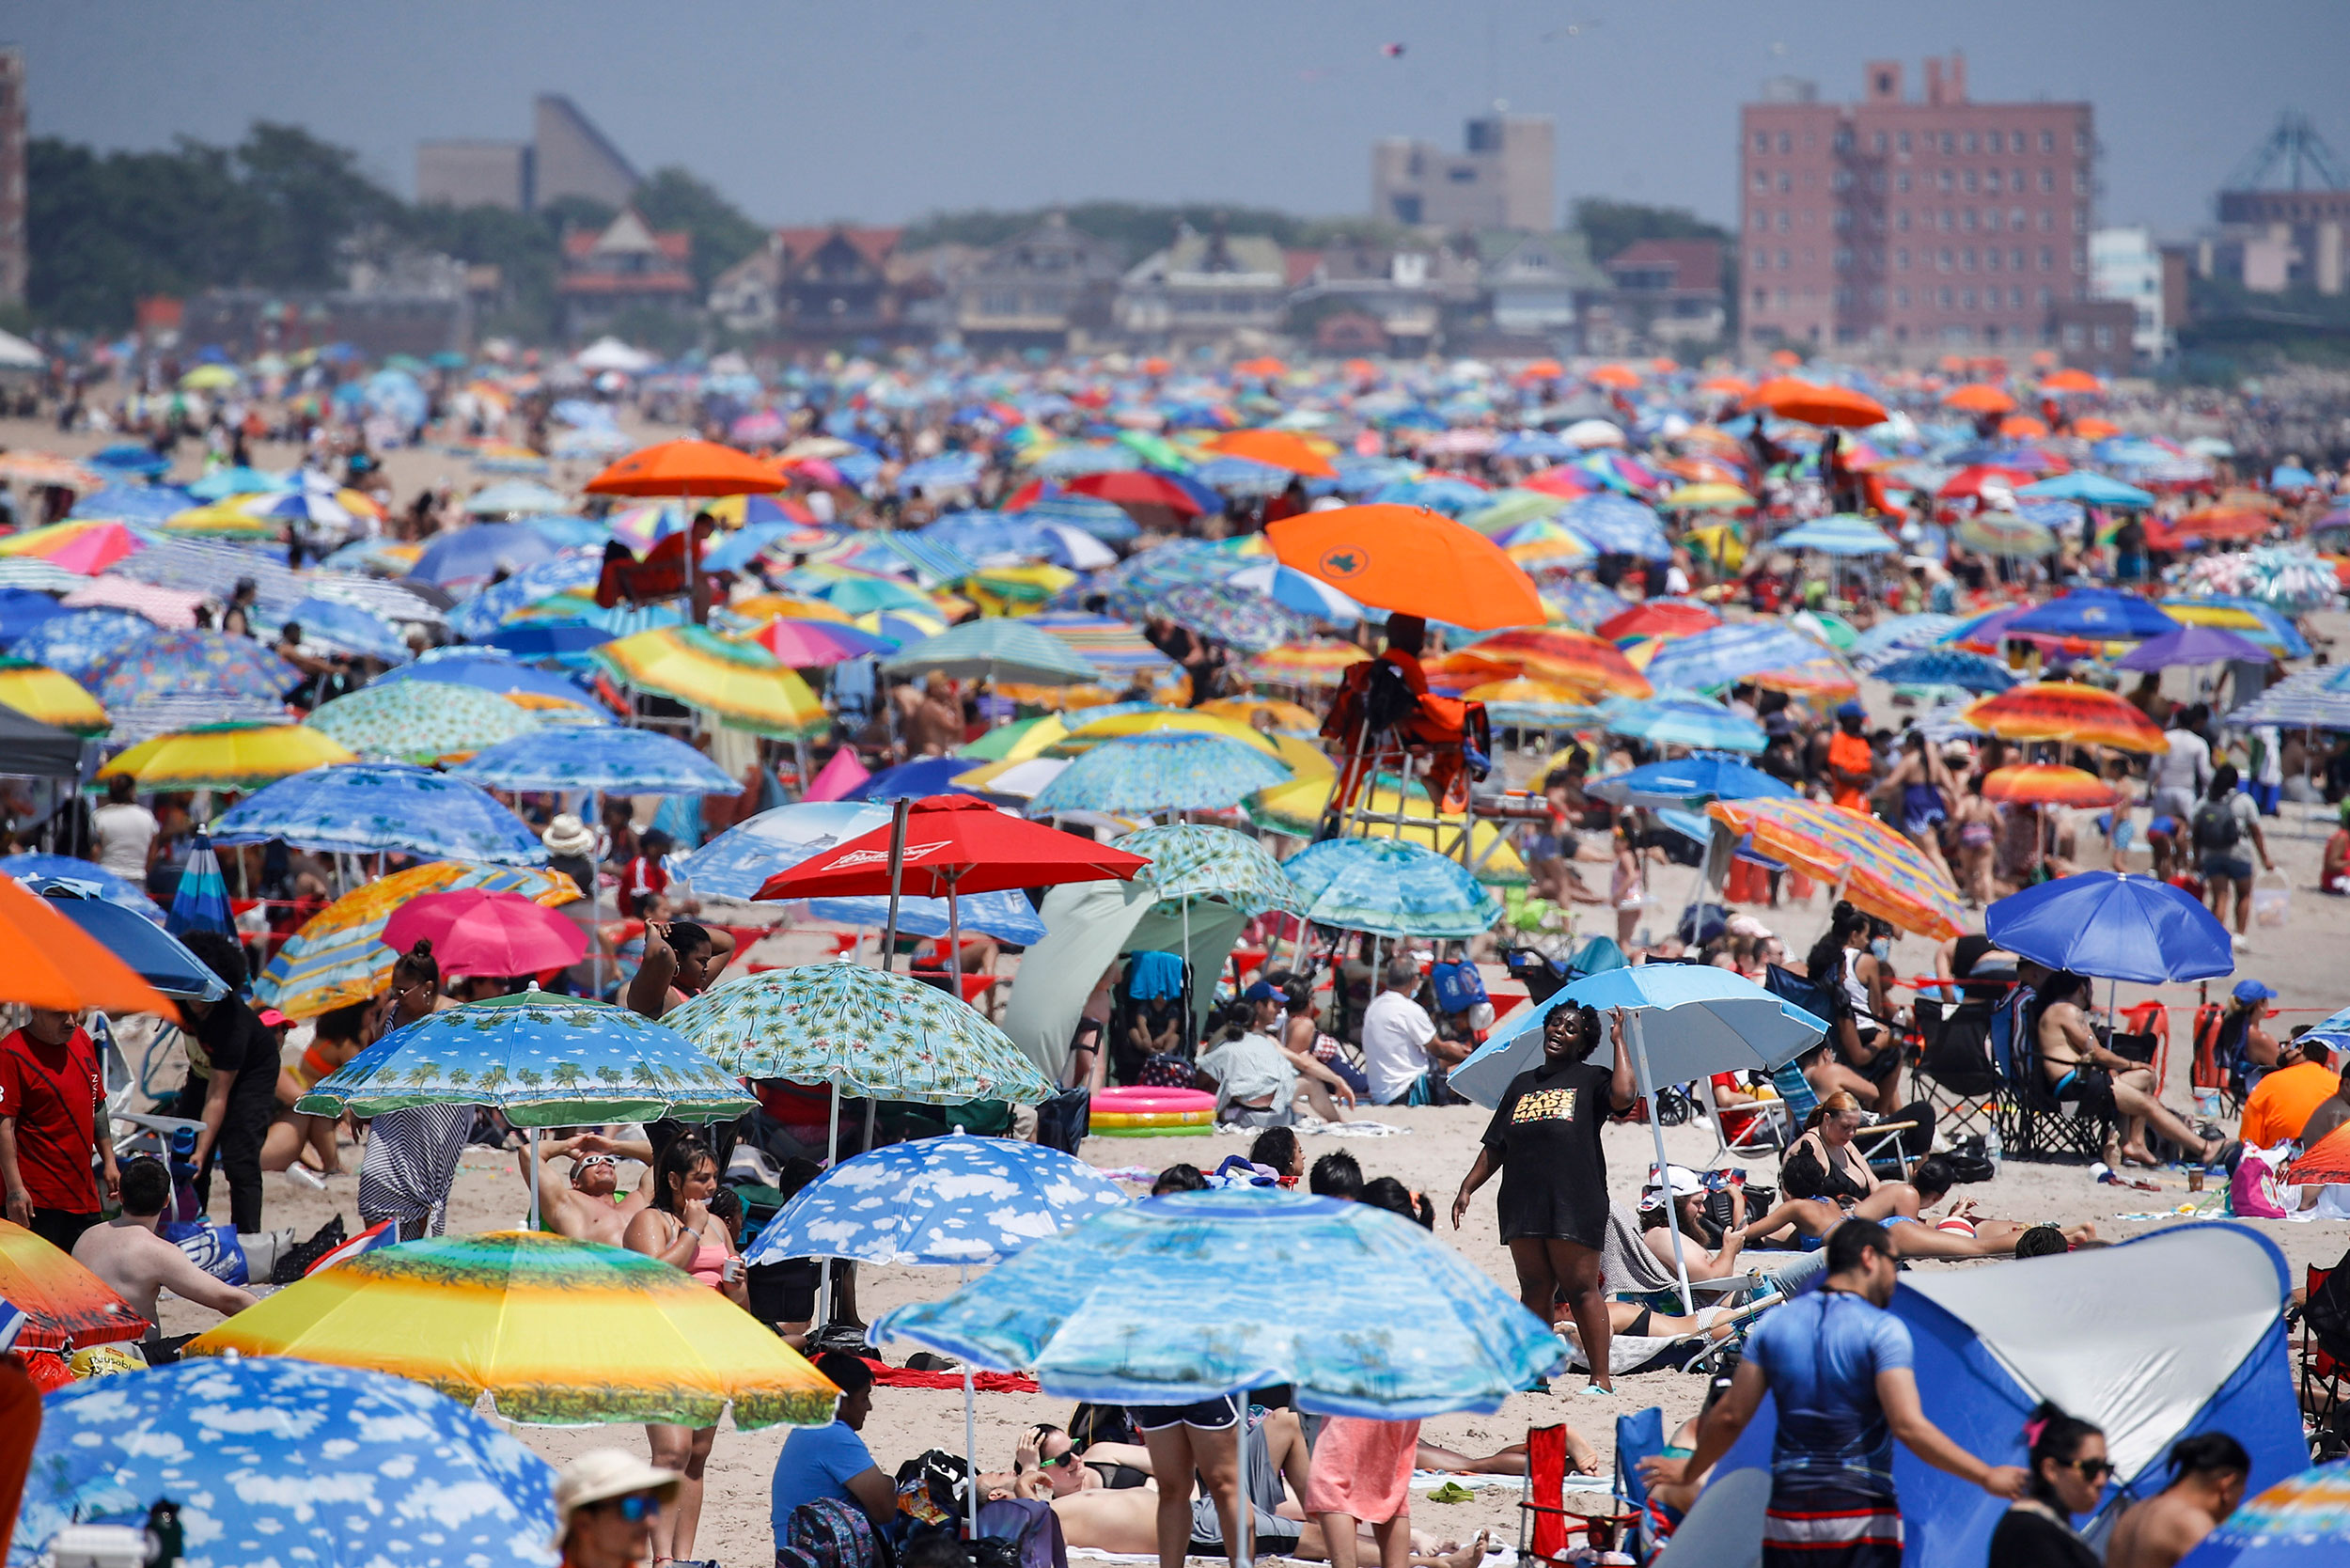 Florida topped 200,000 coronavirus cases as nation marked a different July 4th